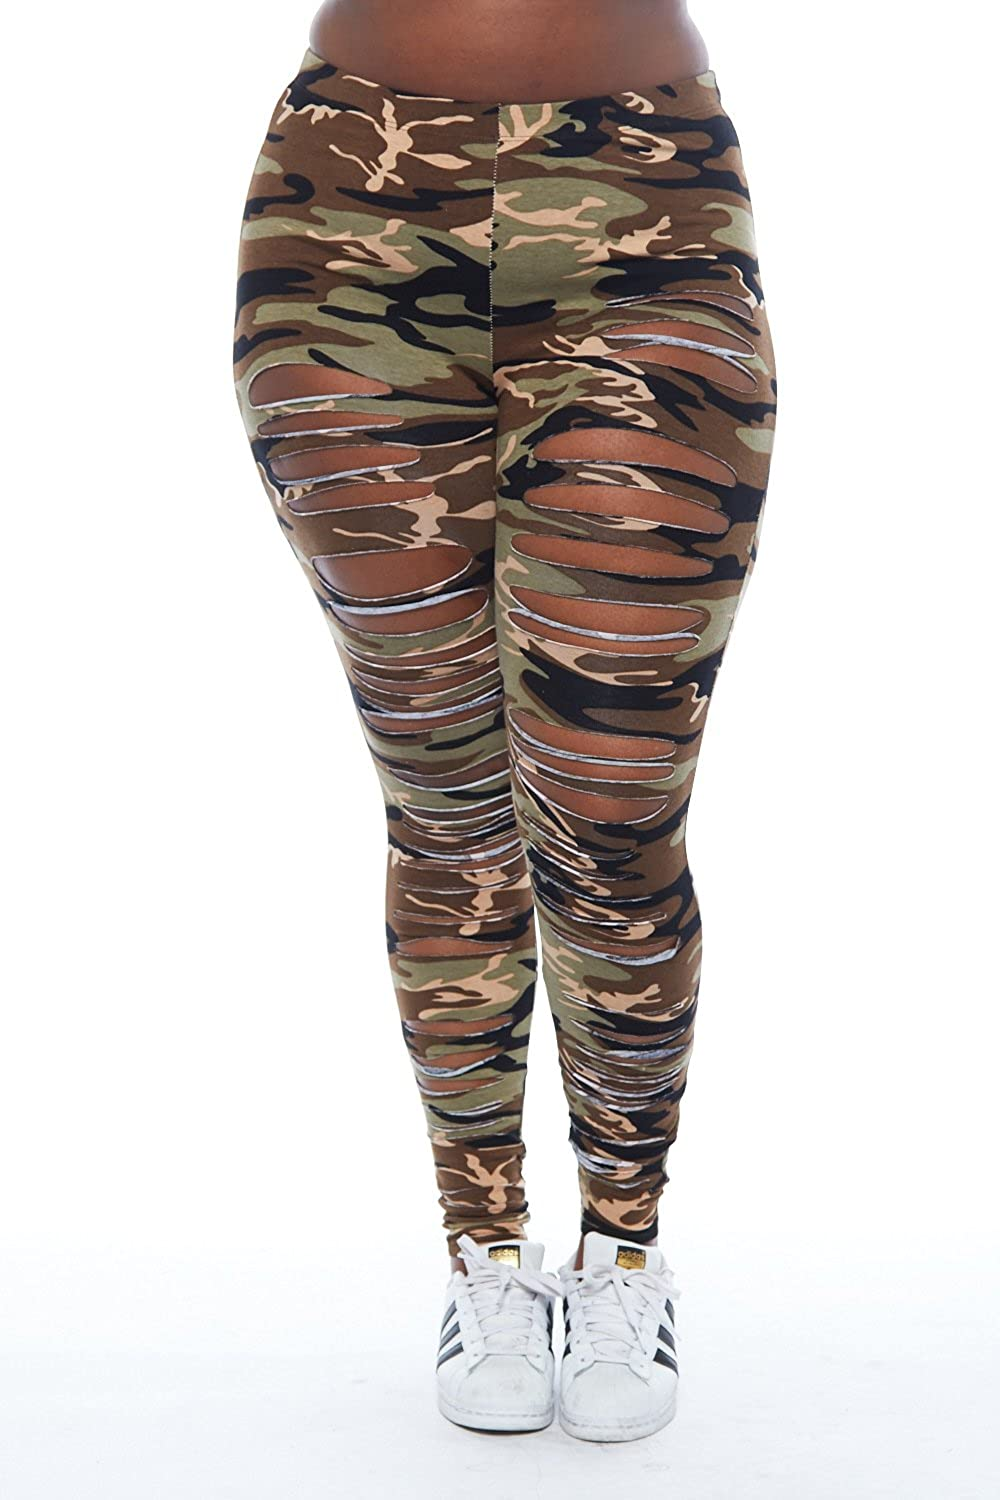 b8ce8072424528 Womens Plus Ripped All Over Camo Print Legging Pants GMP6213 (XL, Camo) at  Amazon Women's Clothing store: